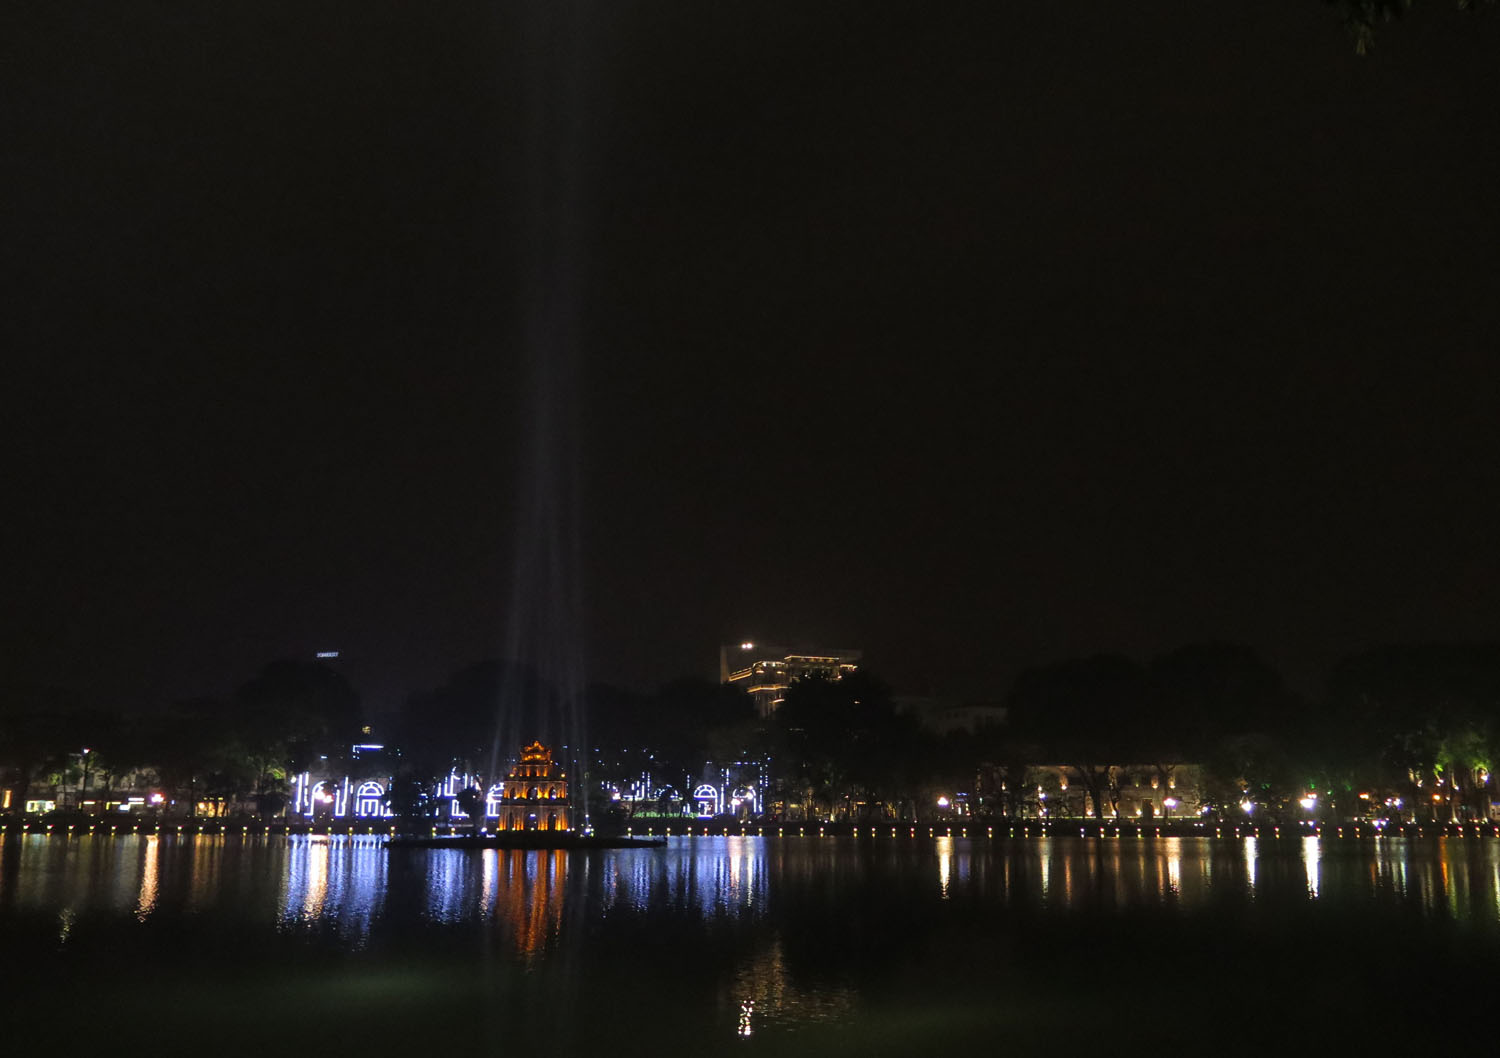 Vietnam-Hanoi-Hoan-Kiem-Lake-Night